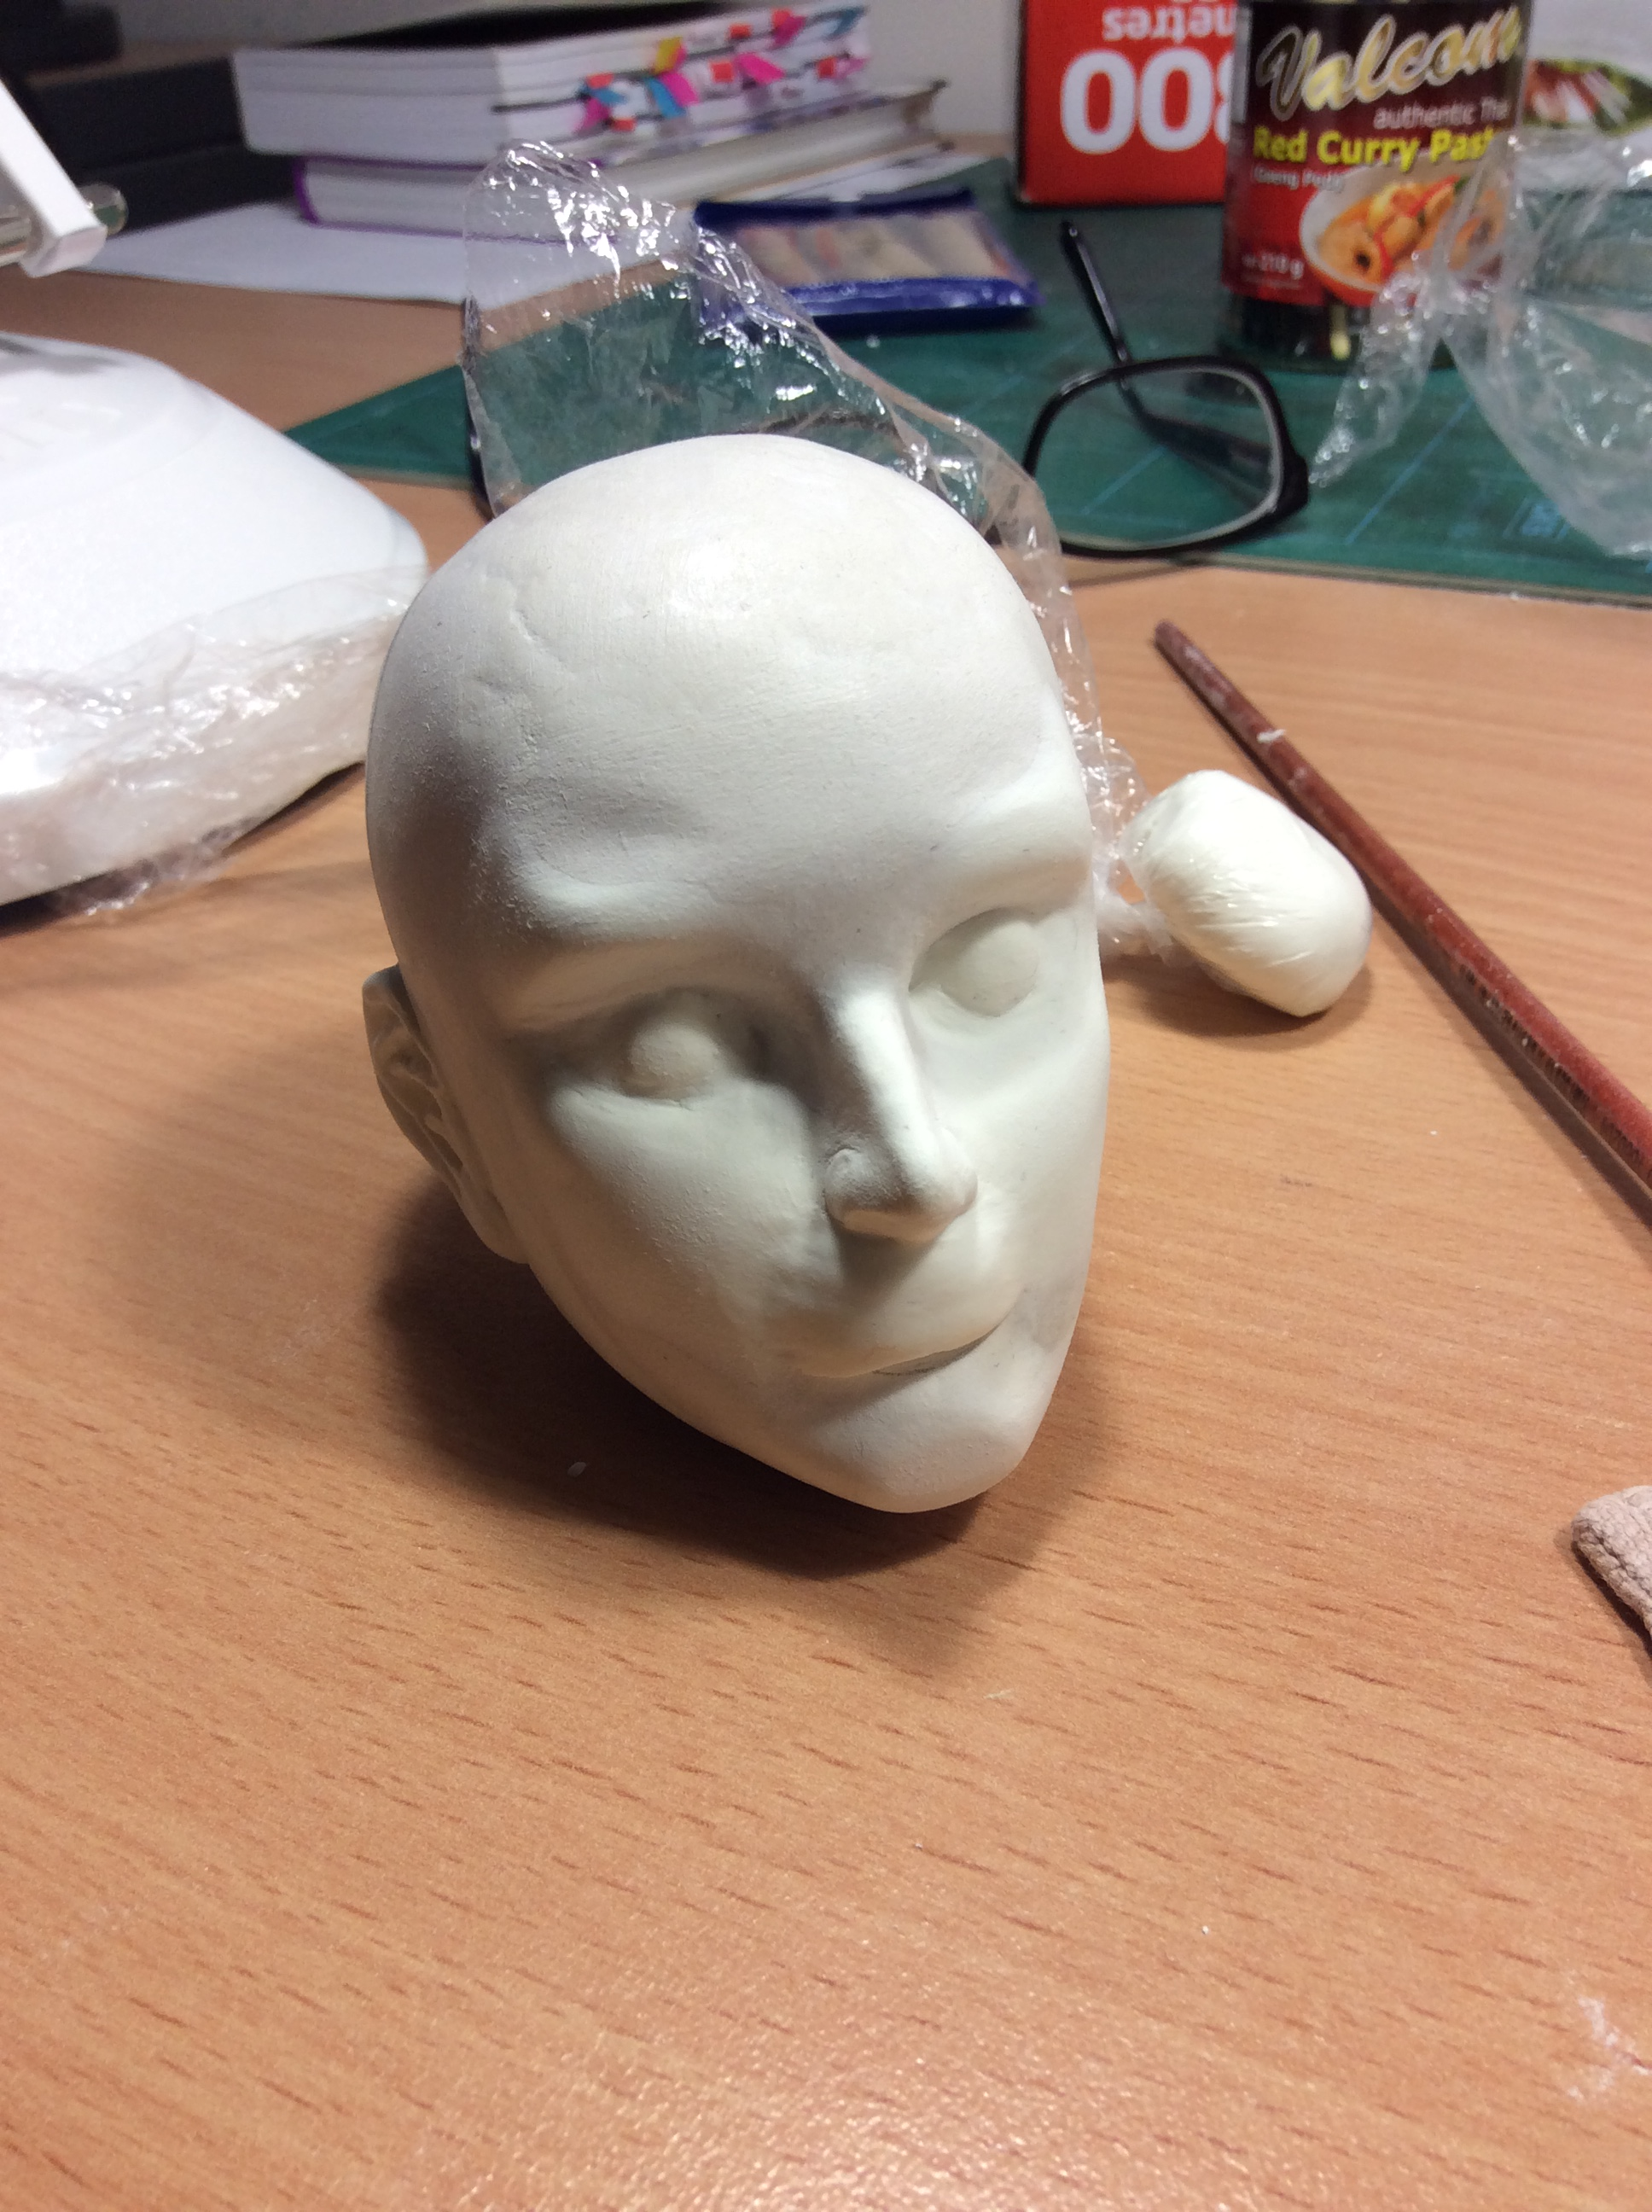 jemse---my-first-doll-head-making-progress-diary-part-3_32293333951_o